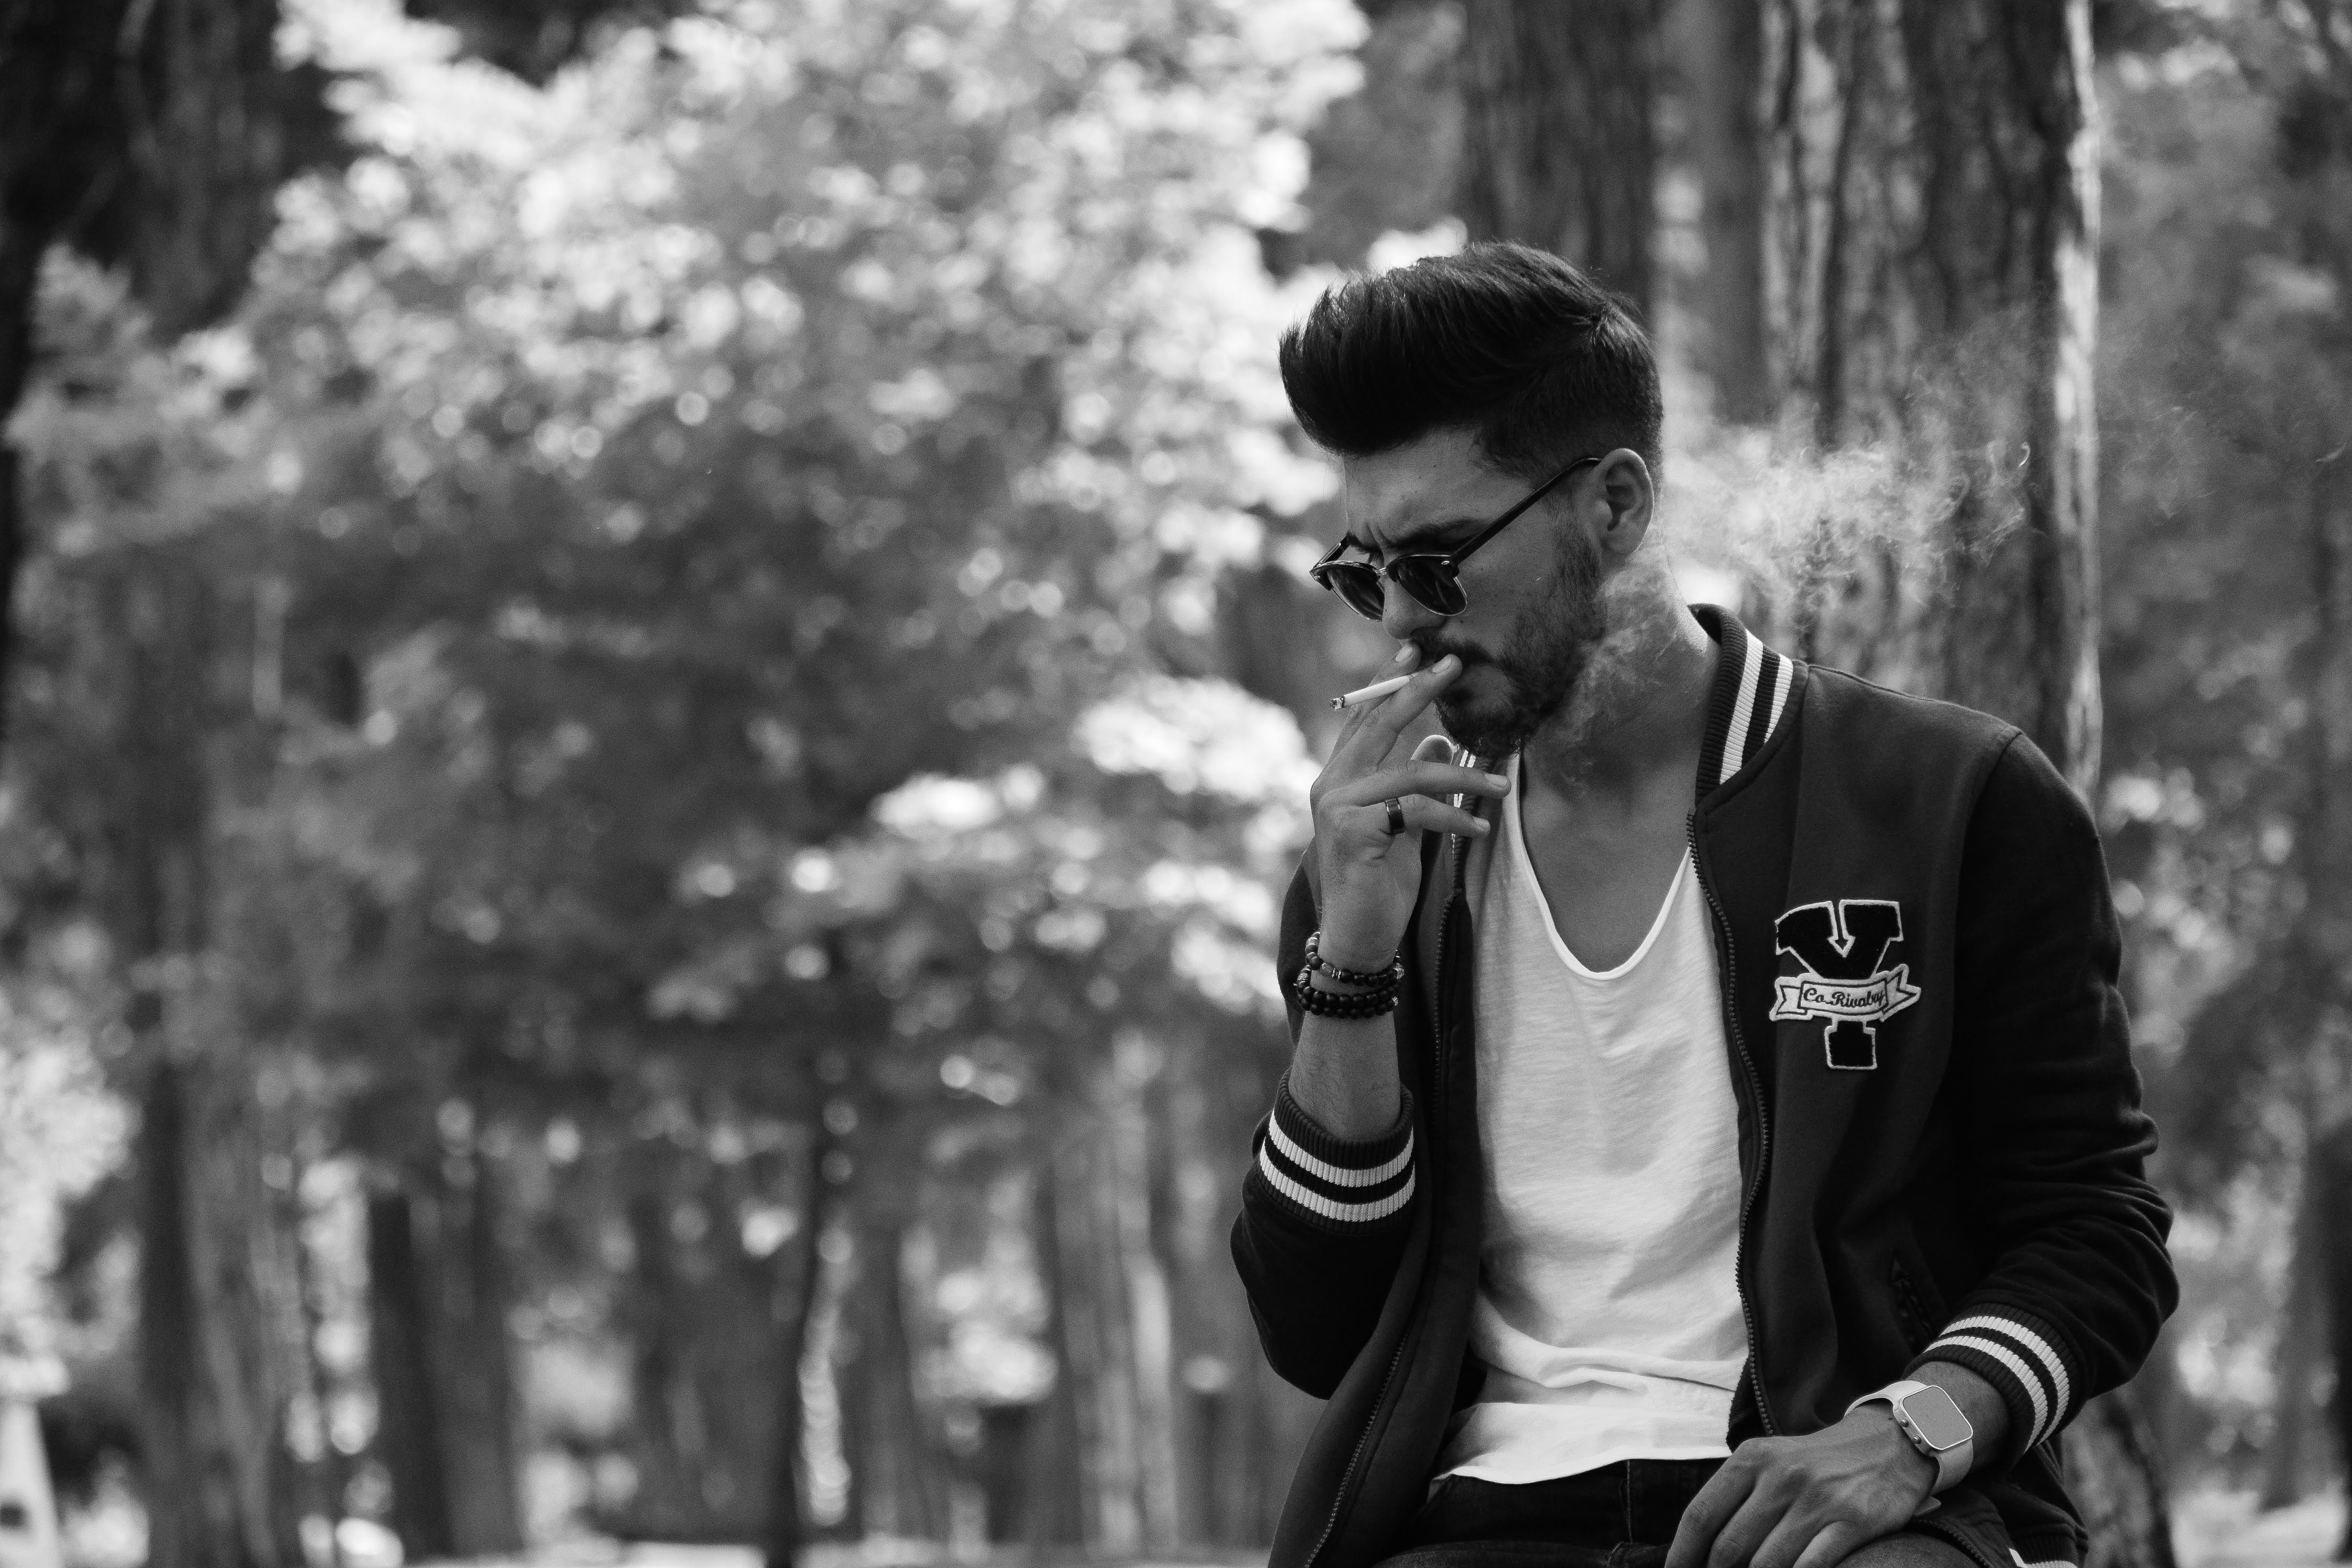 Grayscale Photo of Man in Sunglasses Smoking Cigarette